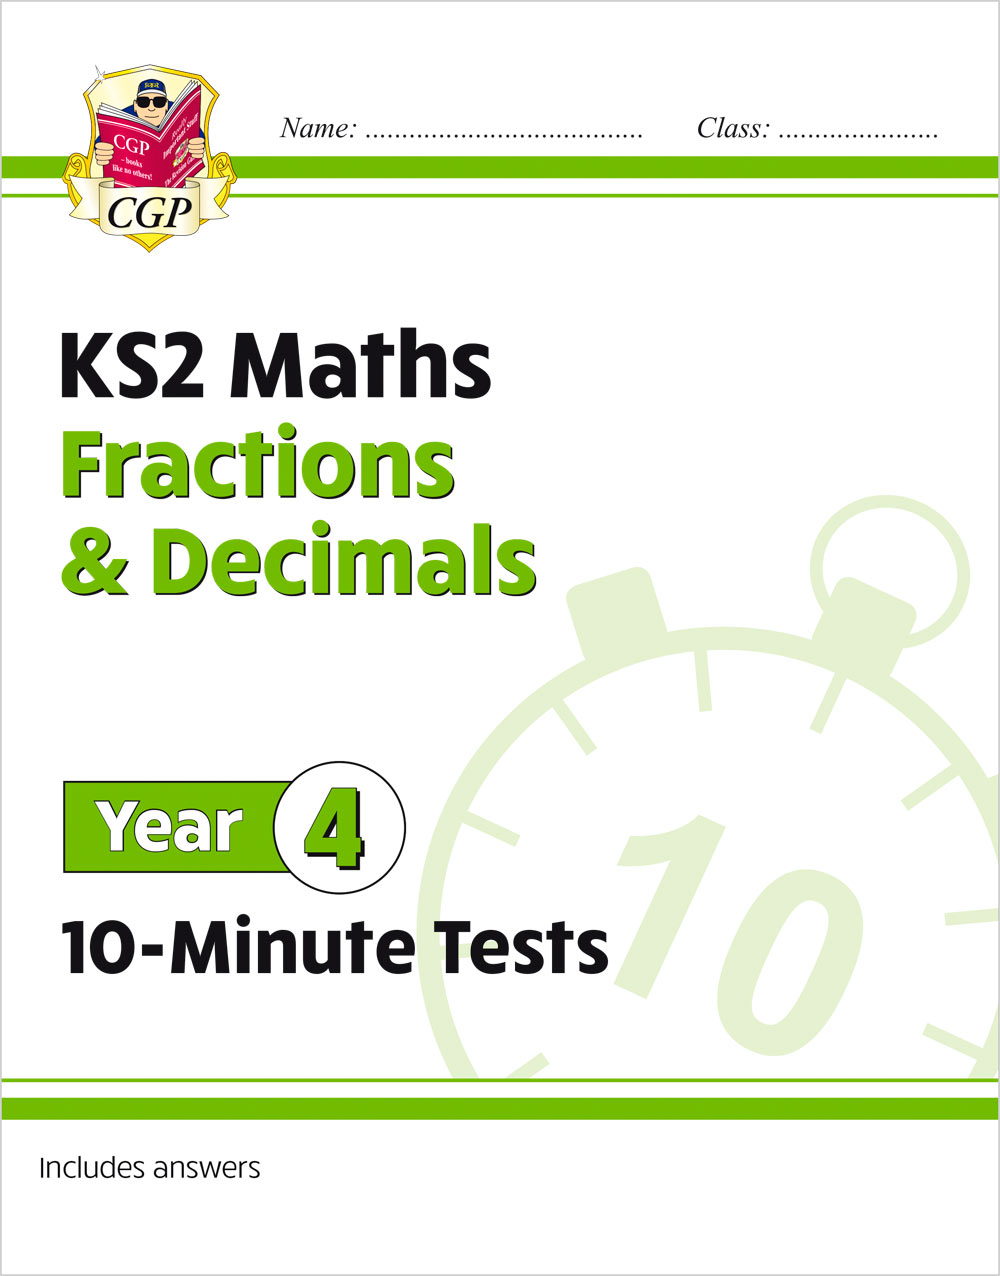 M4FDXP21 - New KS2 Maths 10-Minute Tests: Fractions & Decimals - Year 4